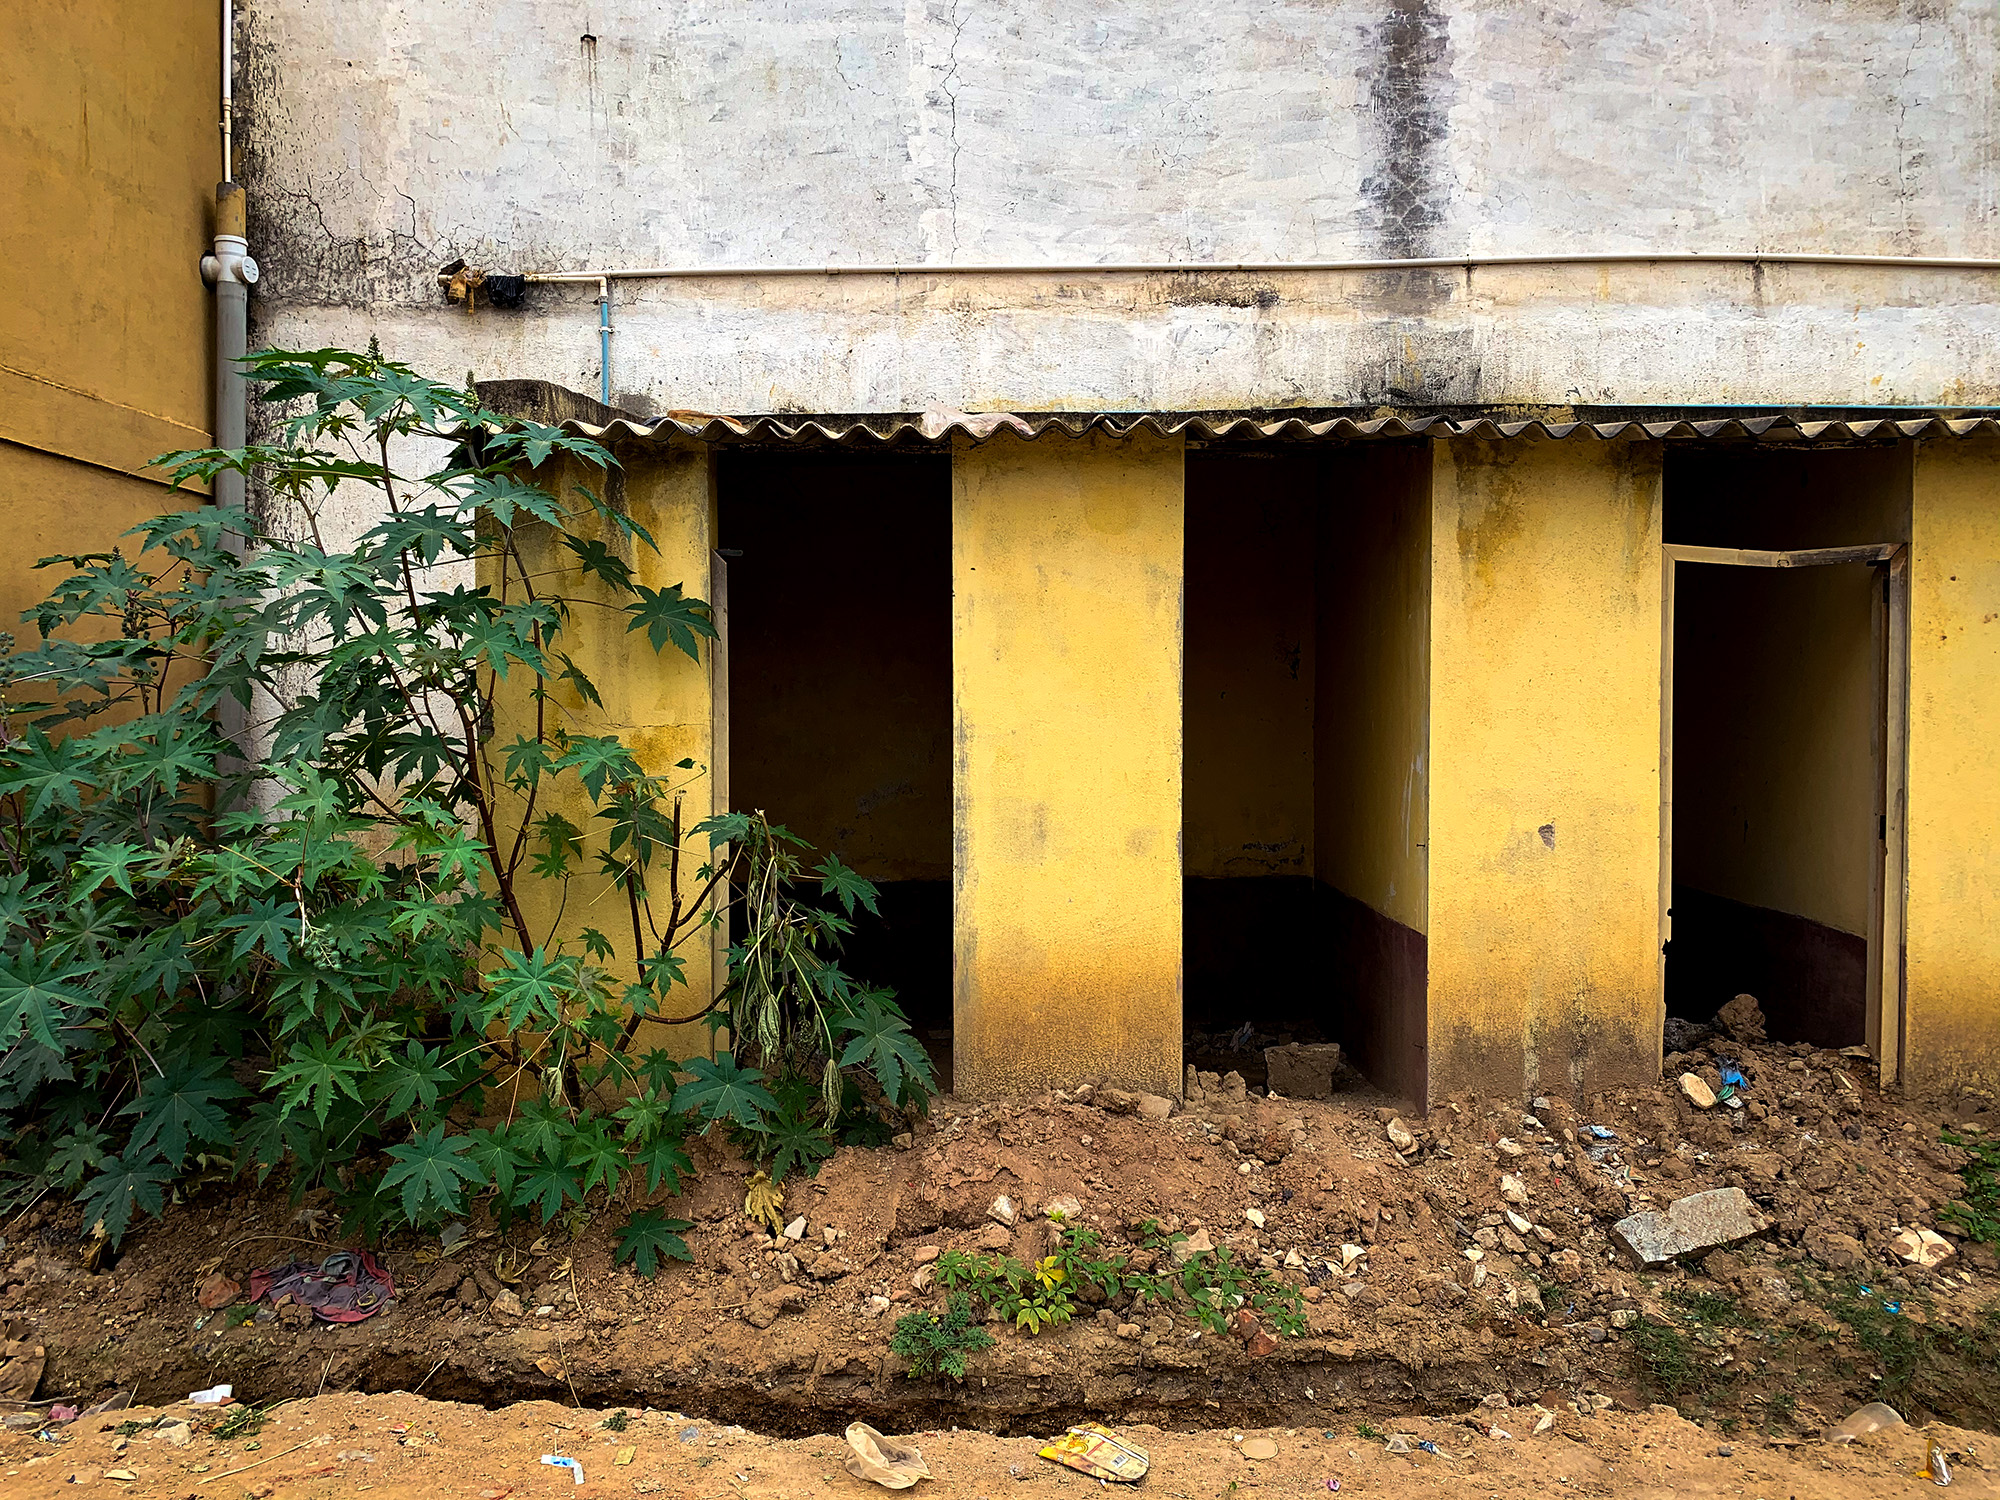 Abandoned under construction toilets under the  Swach Bharat scheme in Bangalore.